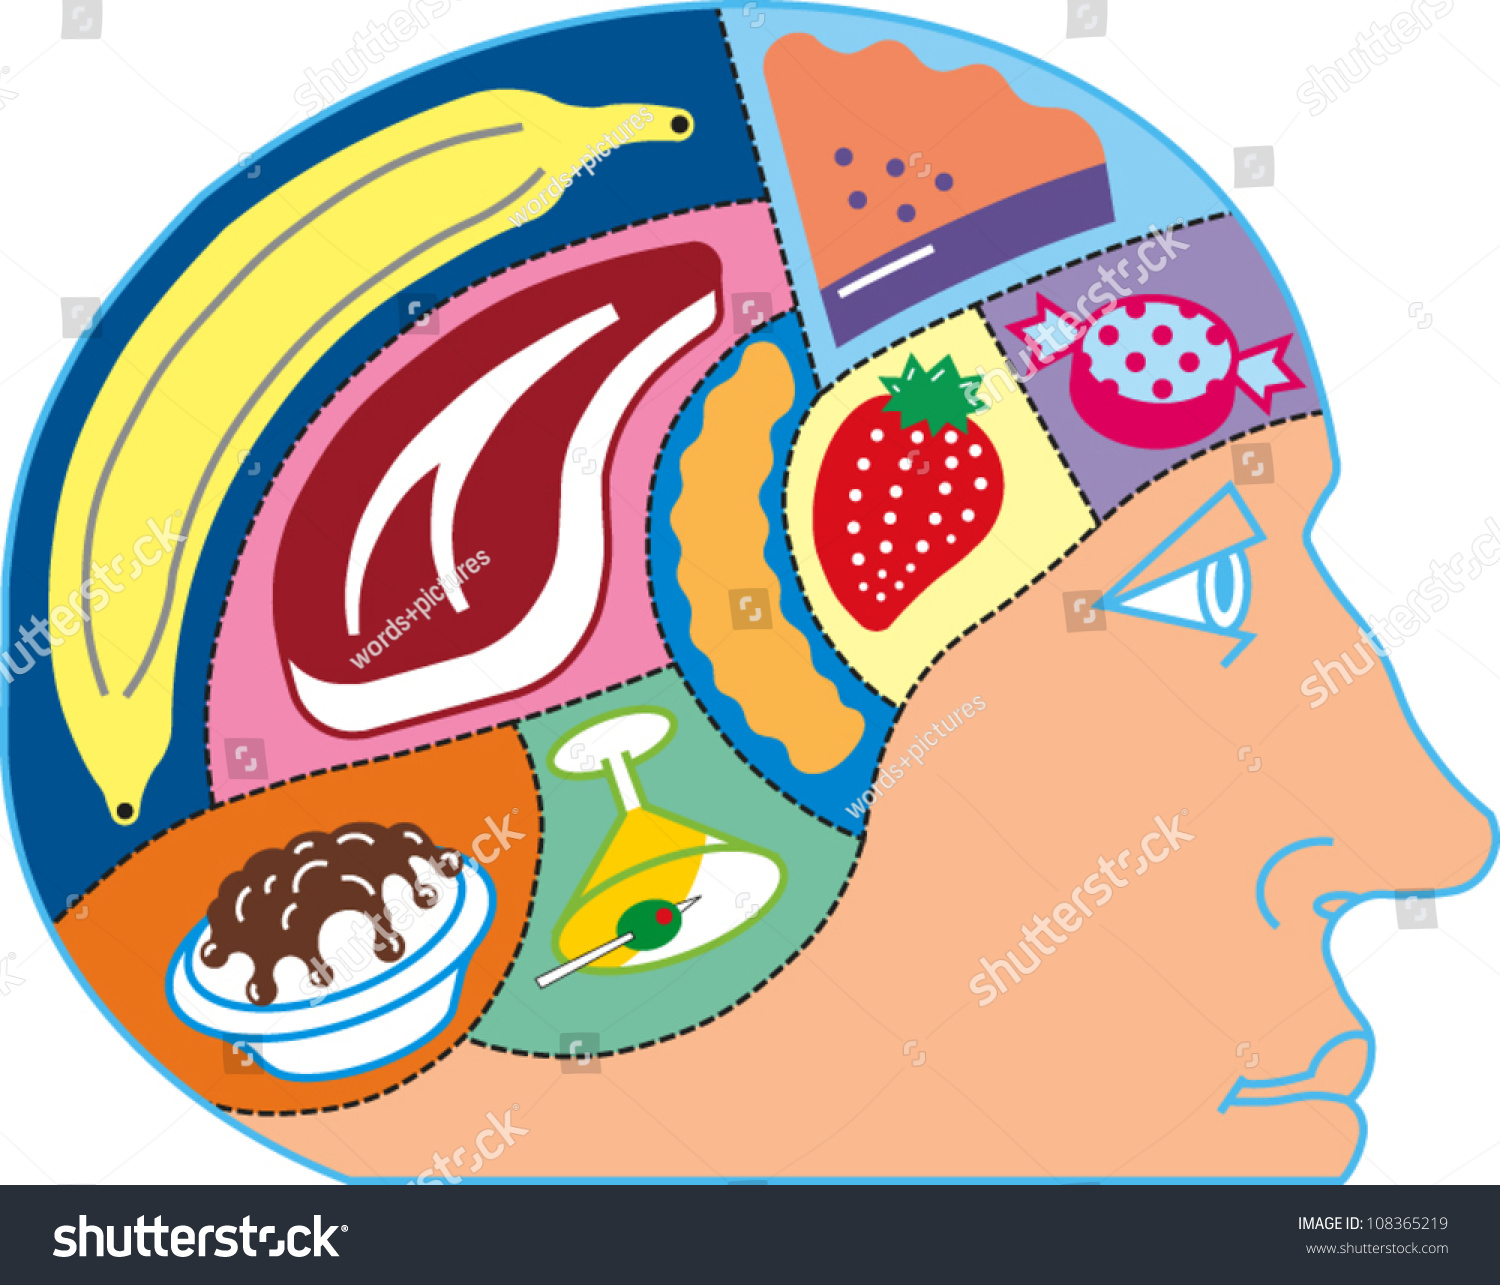 Dancers And Eating Disorders Statistics Stock Vector A Person S Head With Various